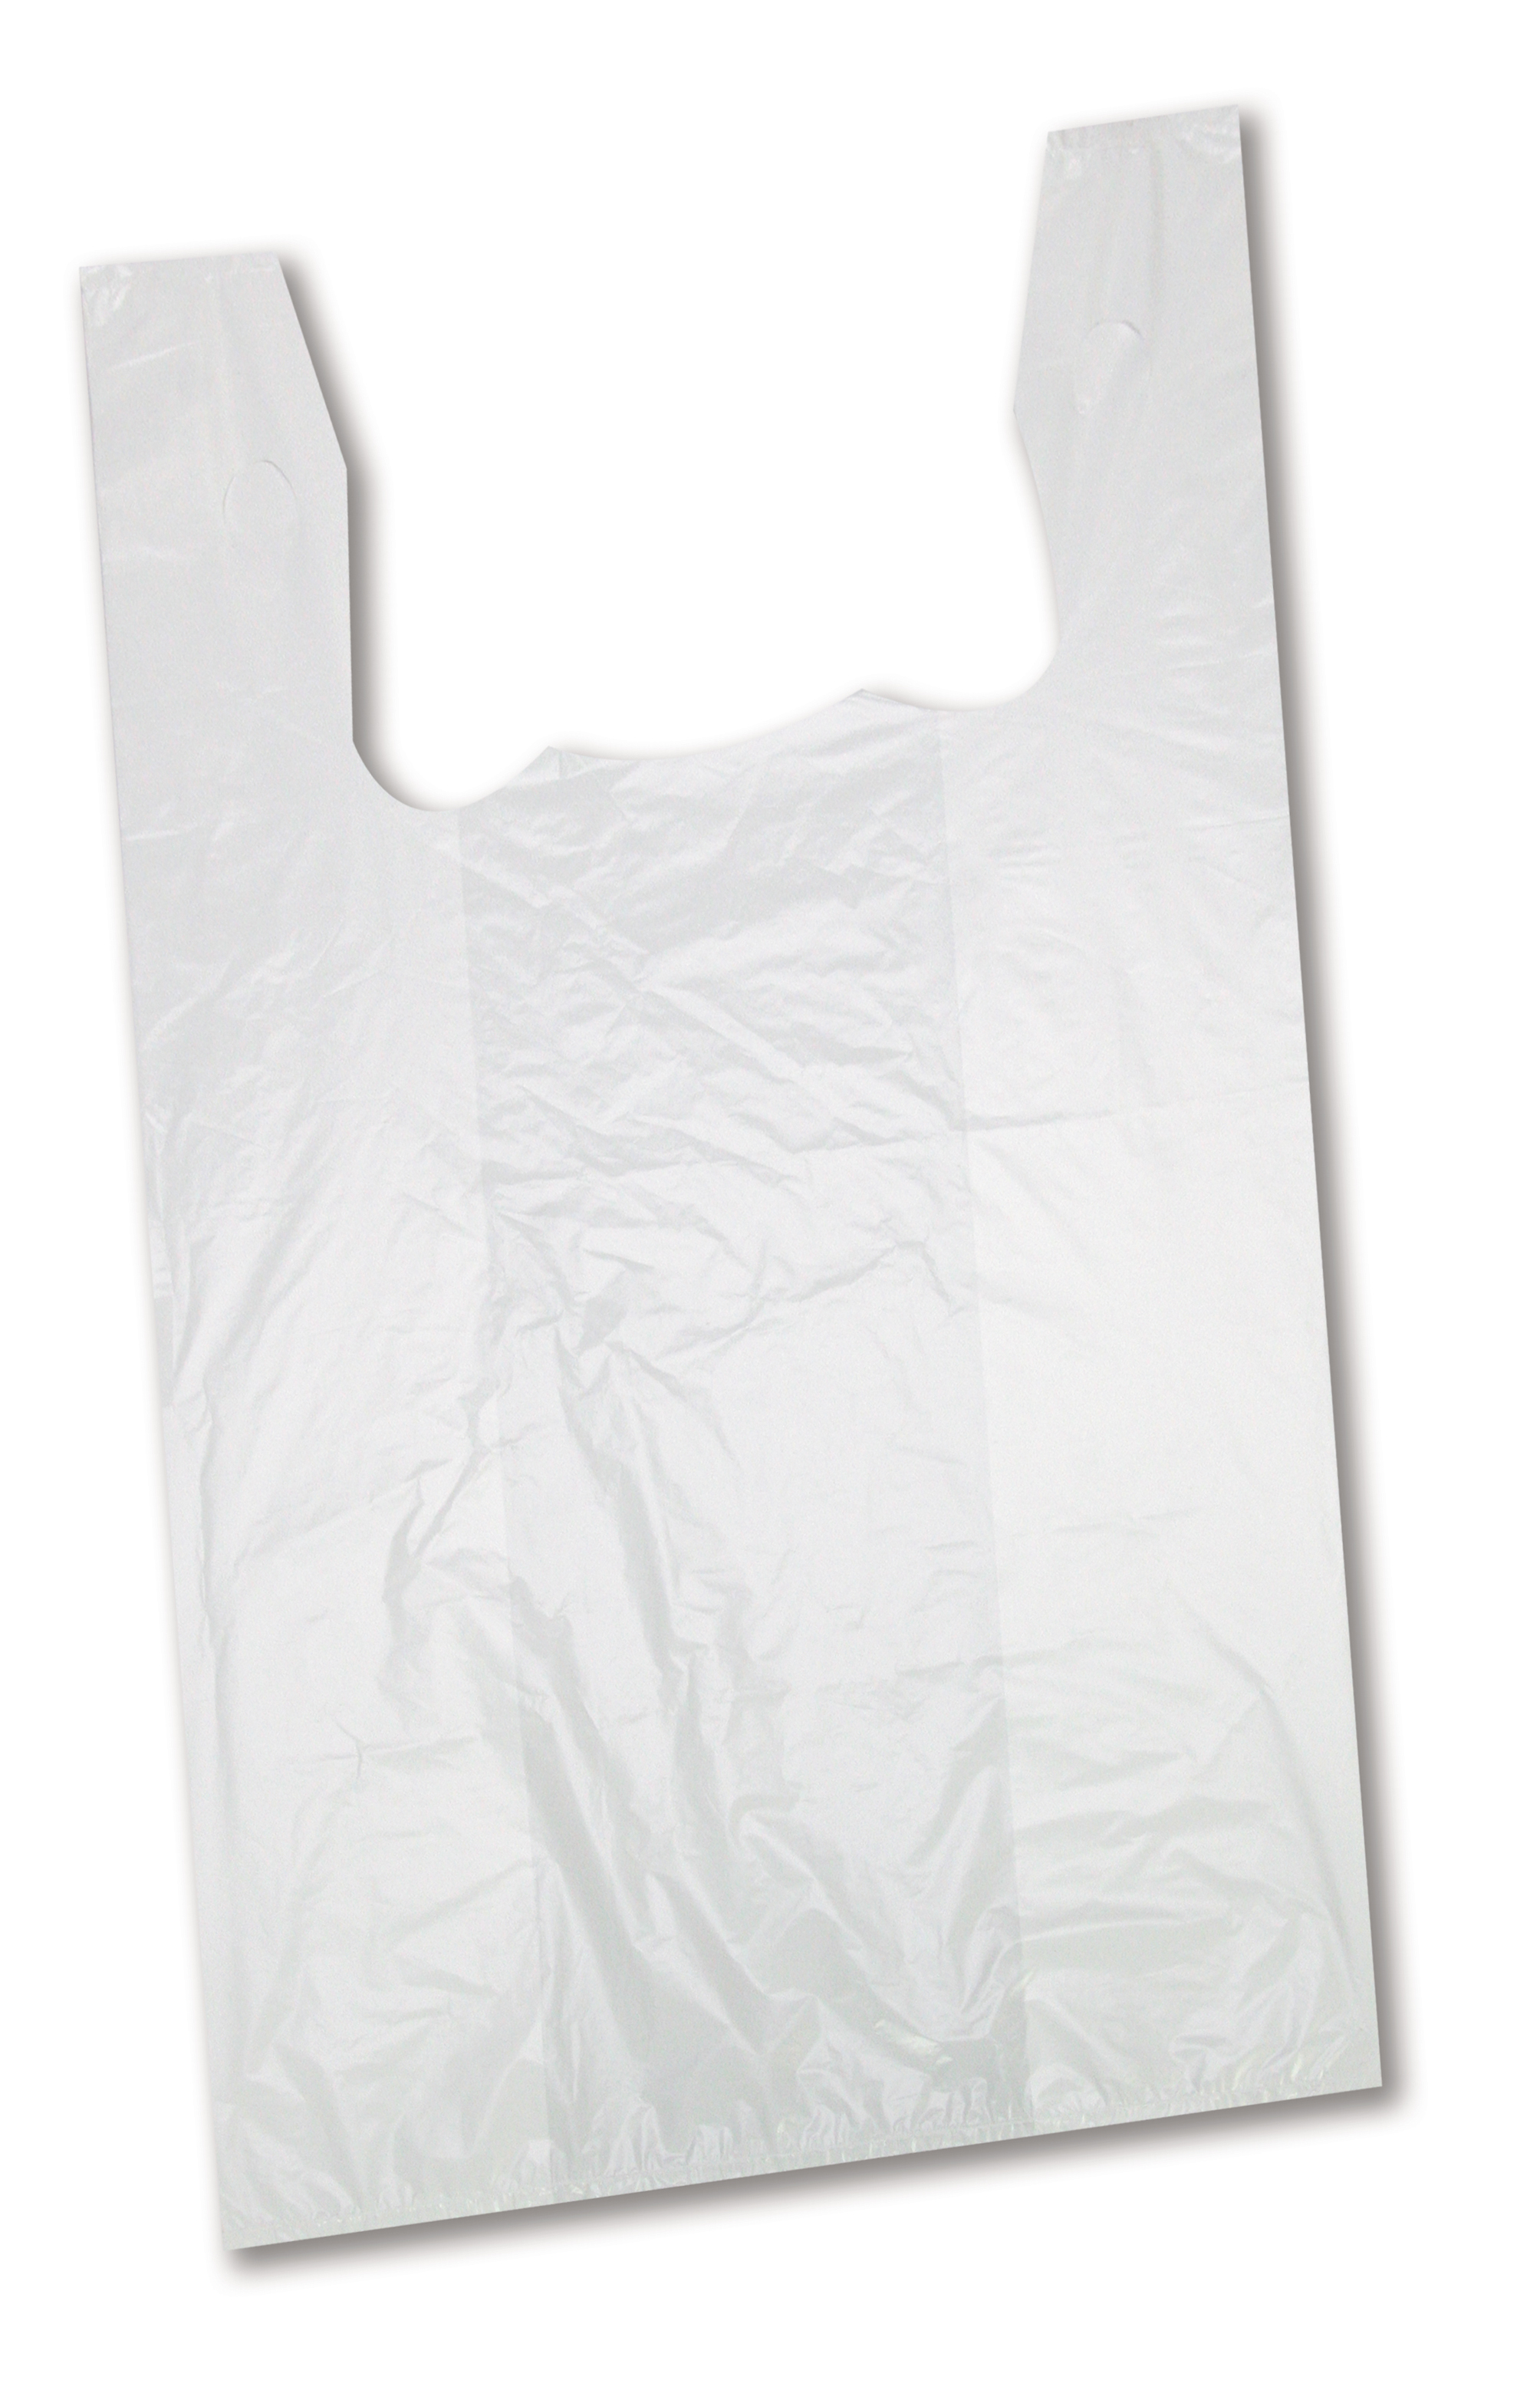 wholesale plastic shopping bags t shirt shopping bags